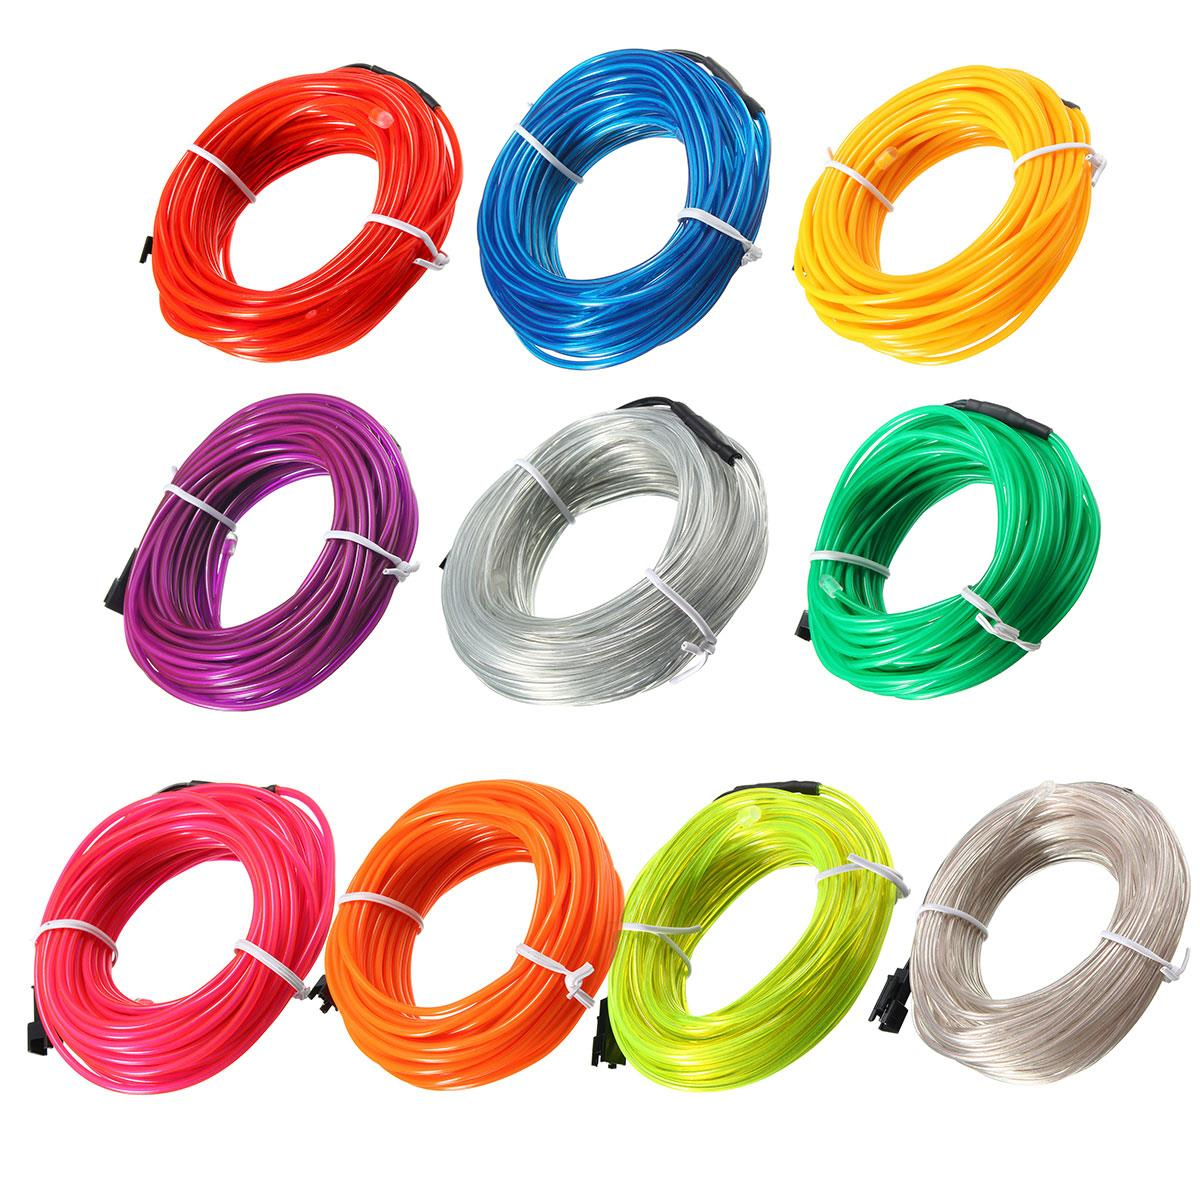 Smuxi 10M 5V EL Wire Neon Light Dance Party Car Decor Light Neon LED Lamp Flexible EL Wire Rope Tube Waterproof LED Strip new arrival colorful neon led bulbs melbourne shuffle dance costume night lamp el wire bright ghost step suit for concert party